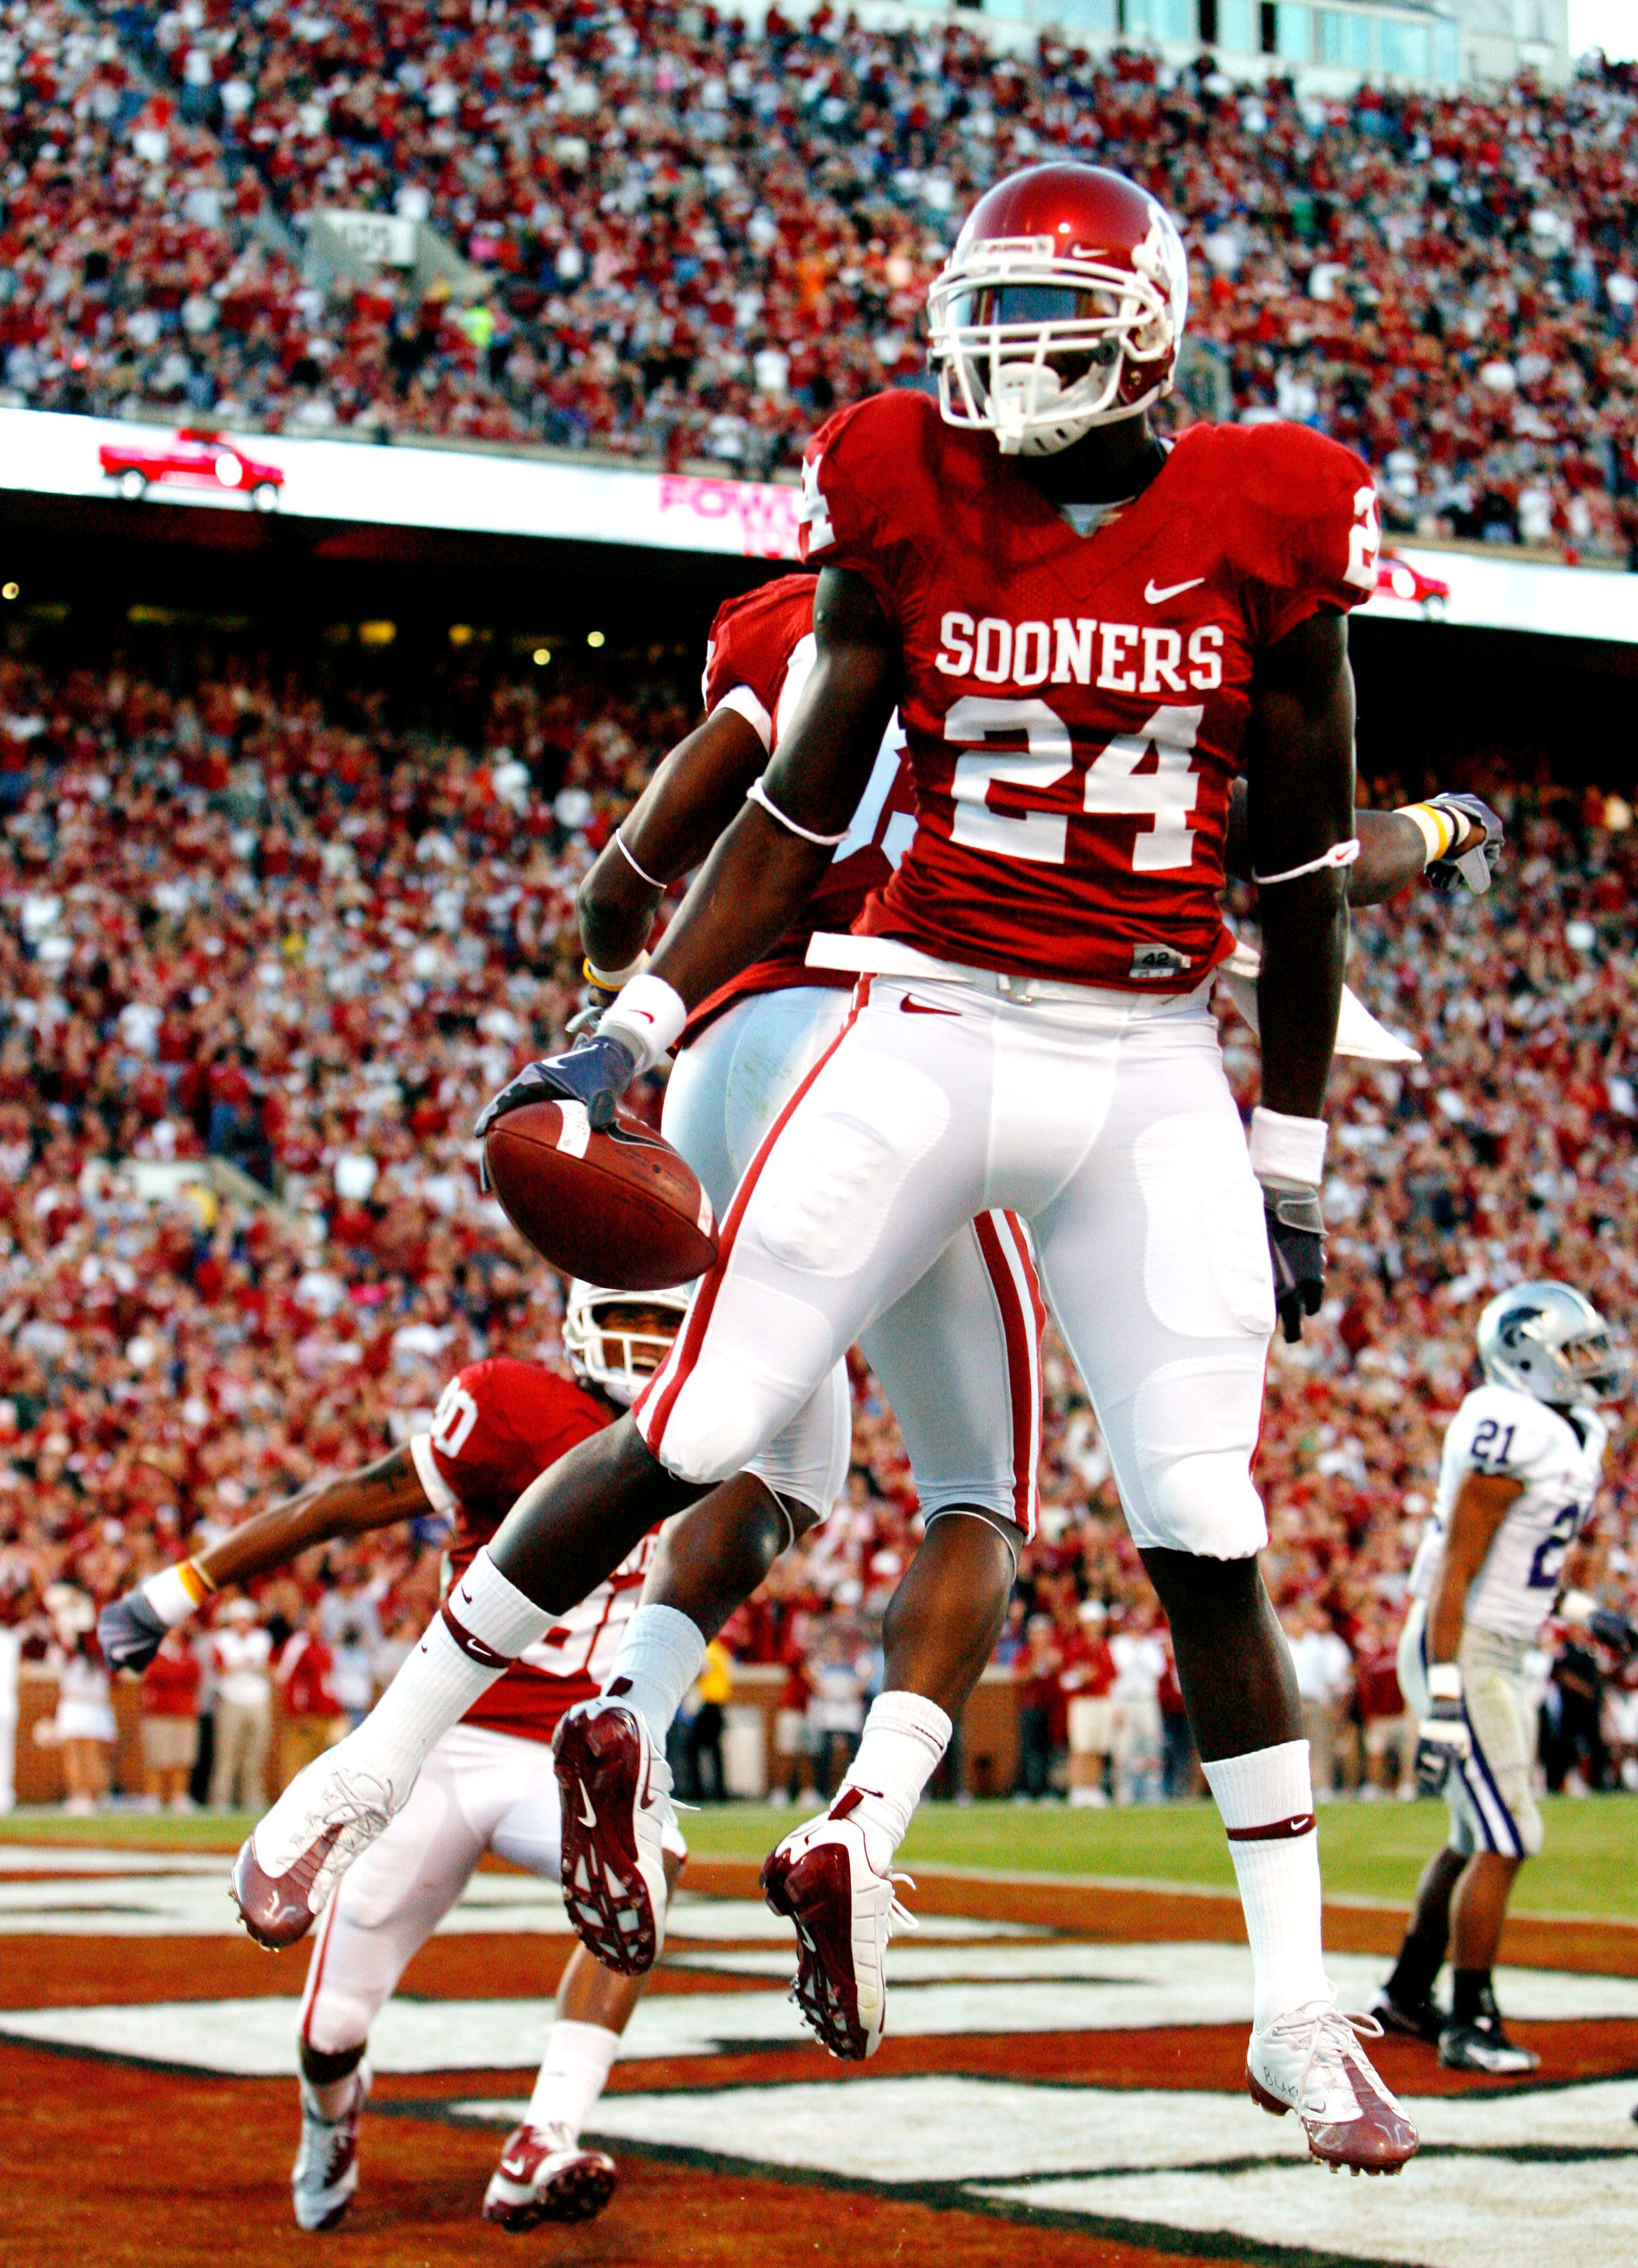 Image detail for -Oklahoma Sooners - Kansas State Wildcats - Big 12